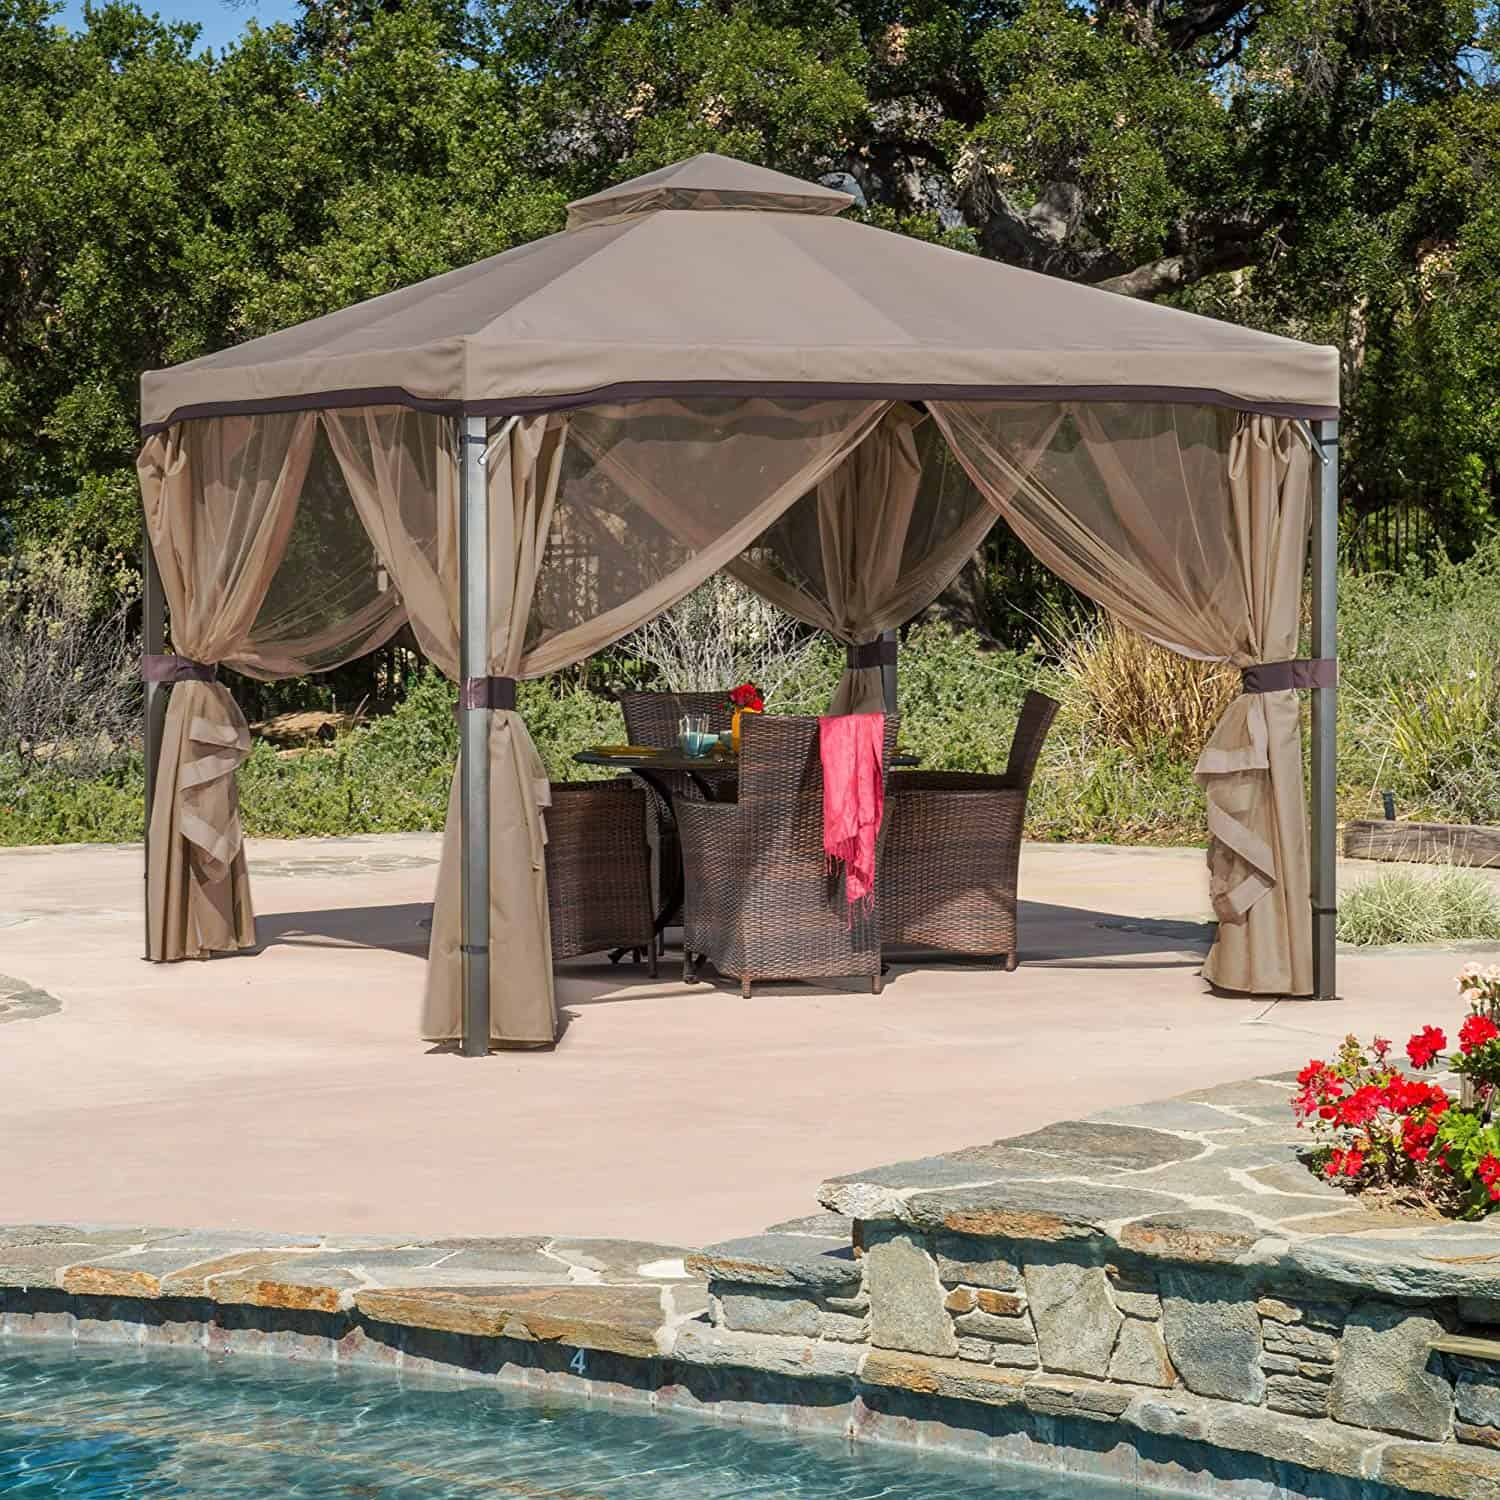 Sonoma | Outdoor Fabric/Steel Gazebo Canopy By Great Deal Furniture